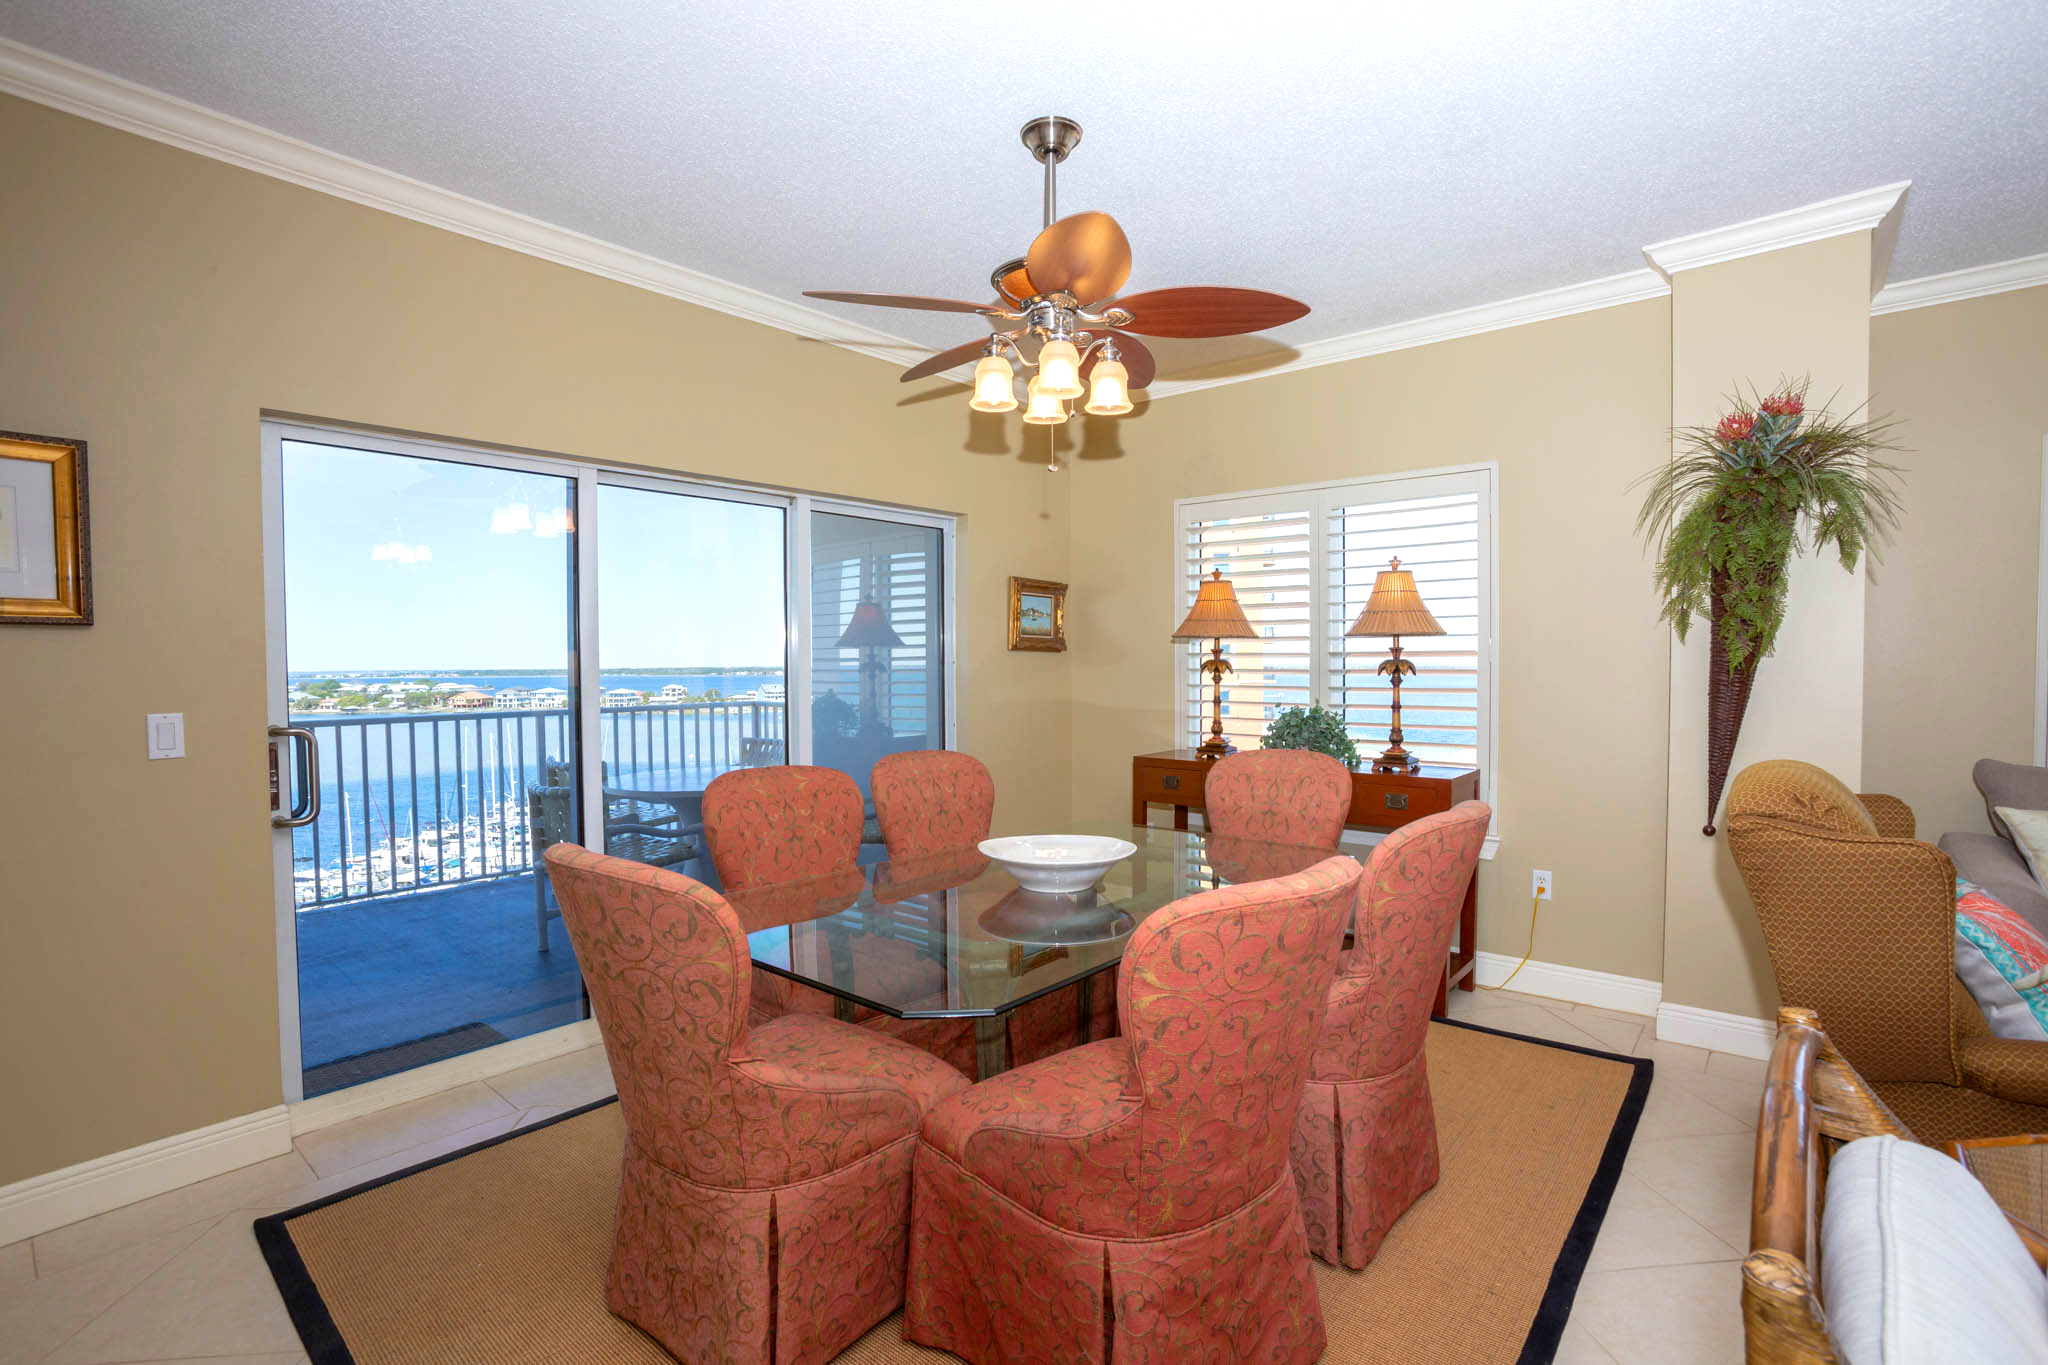 South Harbour #9F Condo rental in South Harbour ~ Pensacola Beach Vacation Rentals by BeachGuide in Pensacola Beach Florida - #13